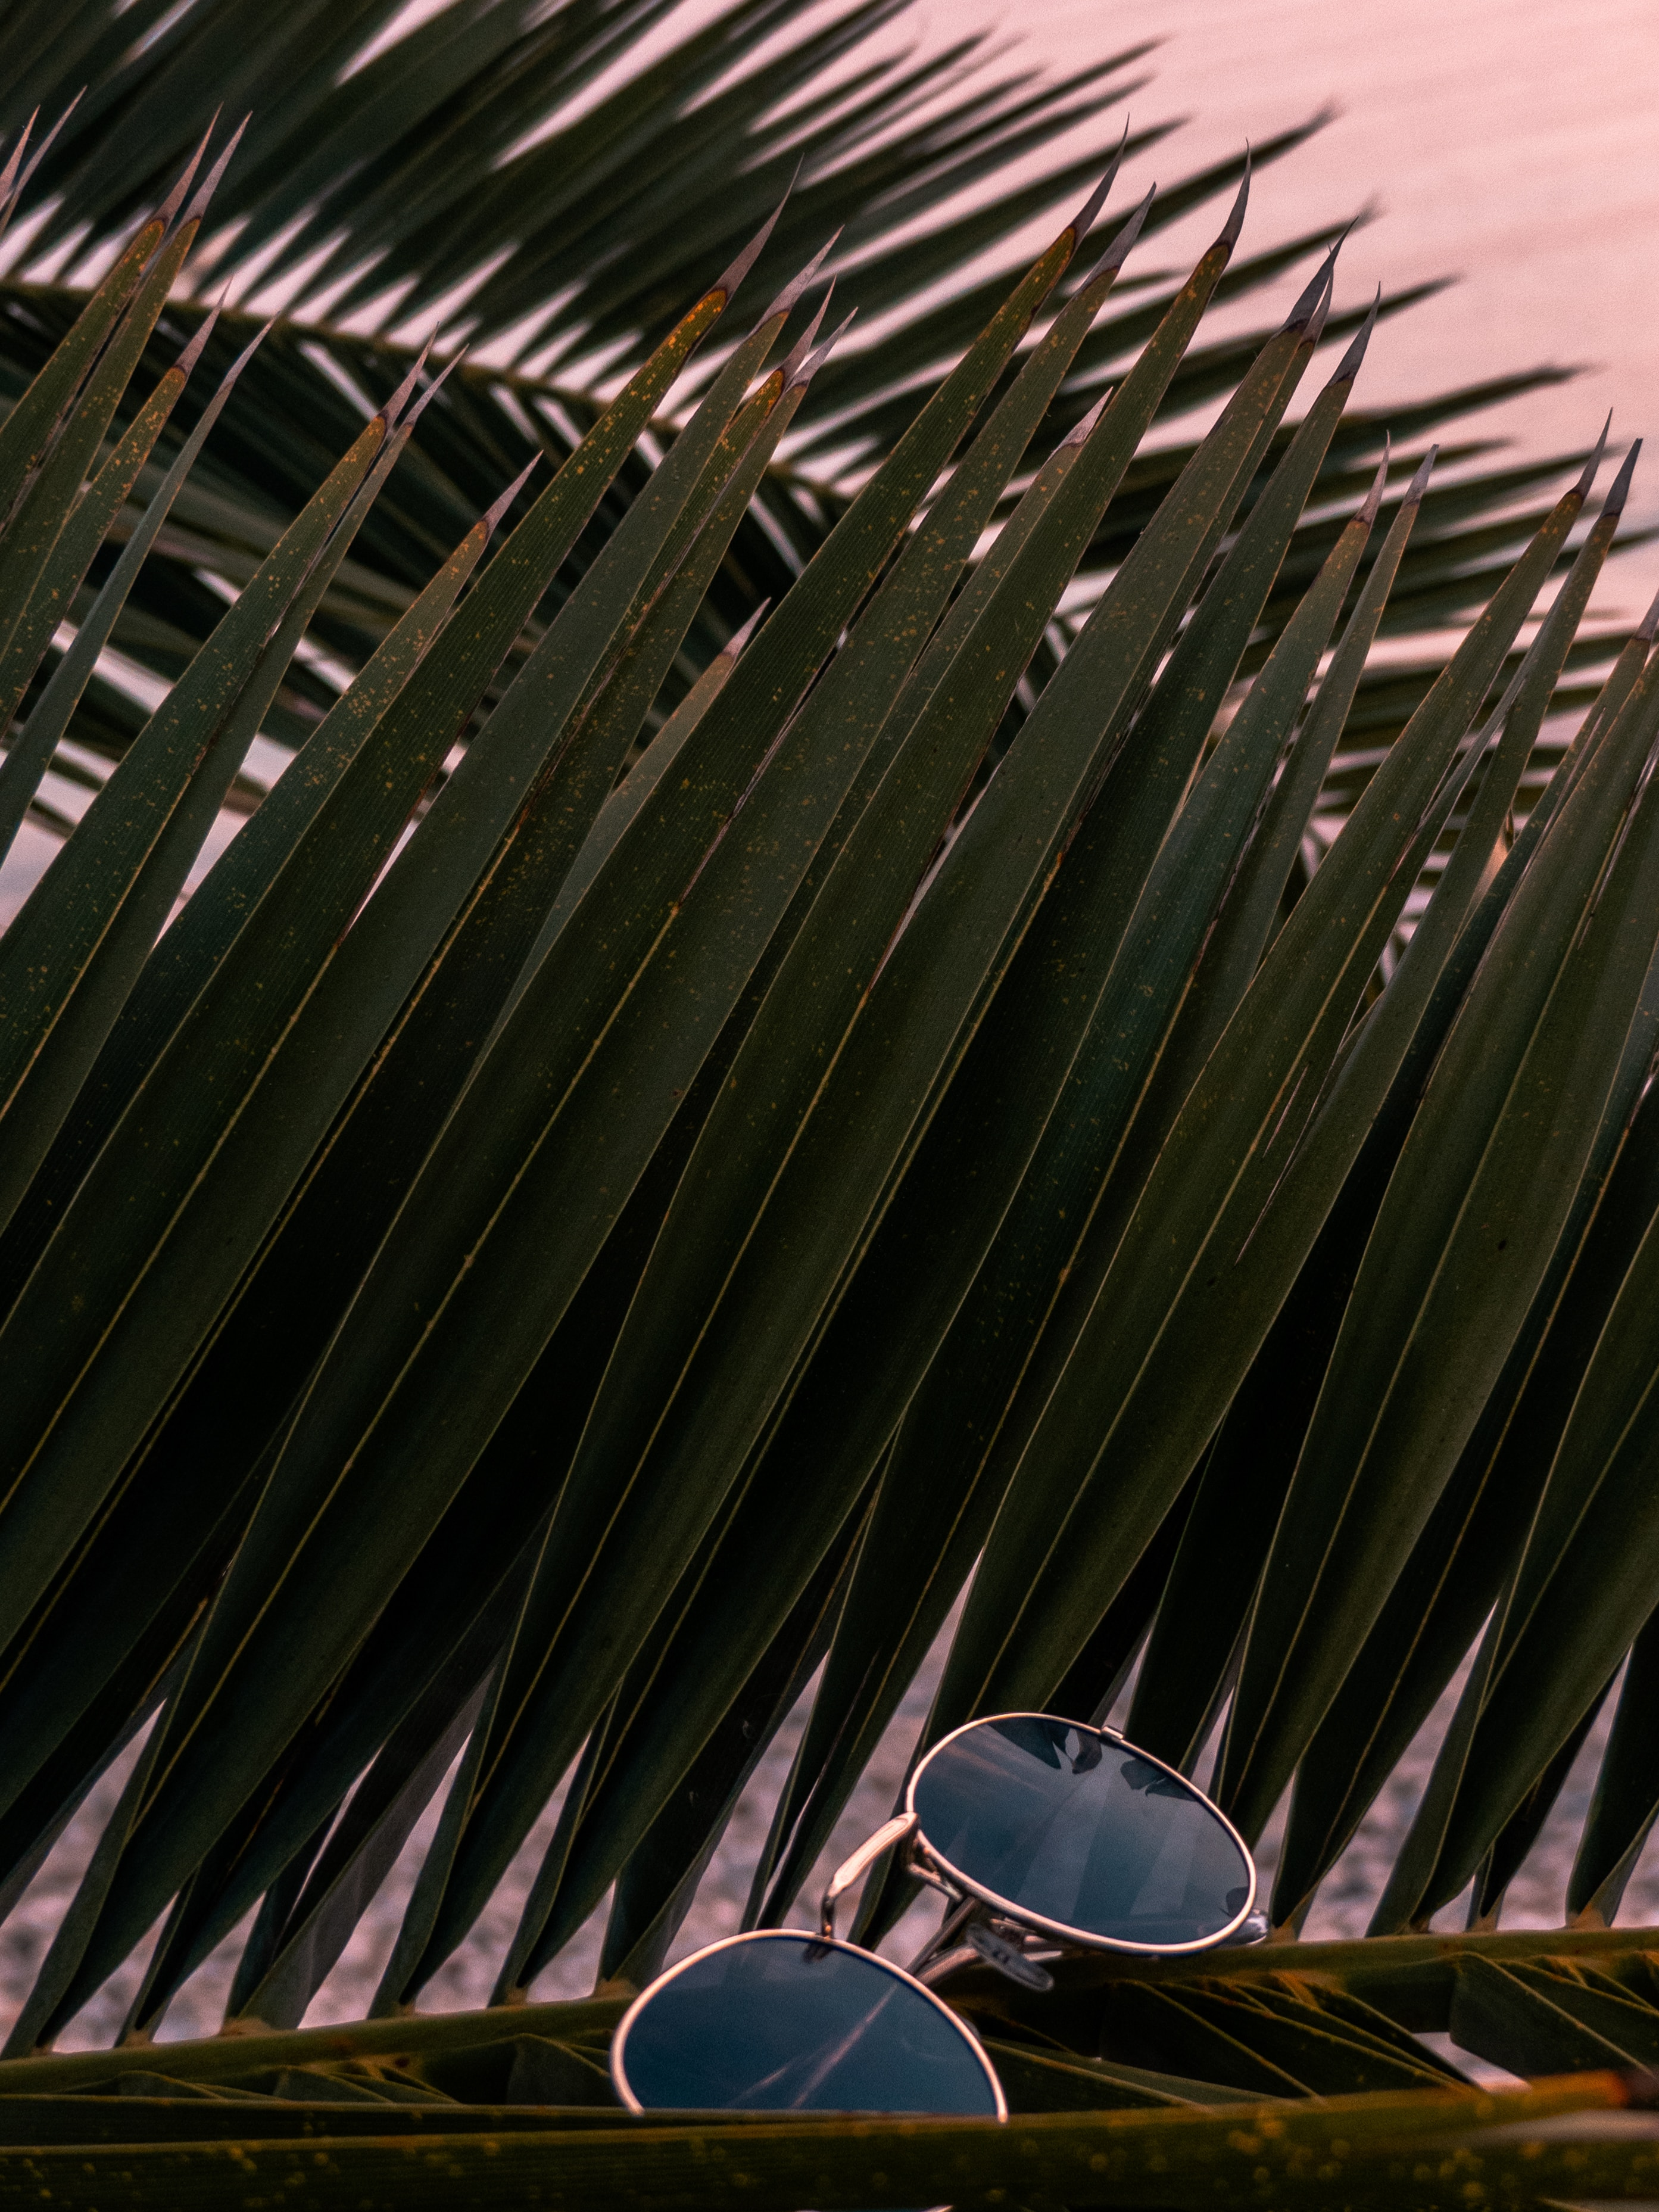 145668 download wallpaper Miscellanea, Miscellaneous, Sunglasses, Glasses, Spectacles, Palm, Branches, Leaves screensavers and pictures for free